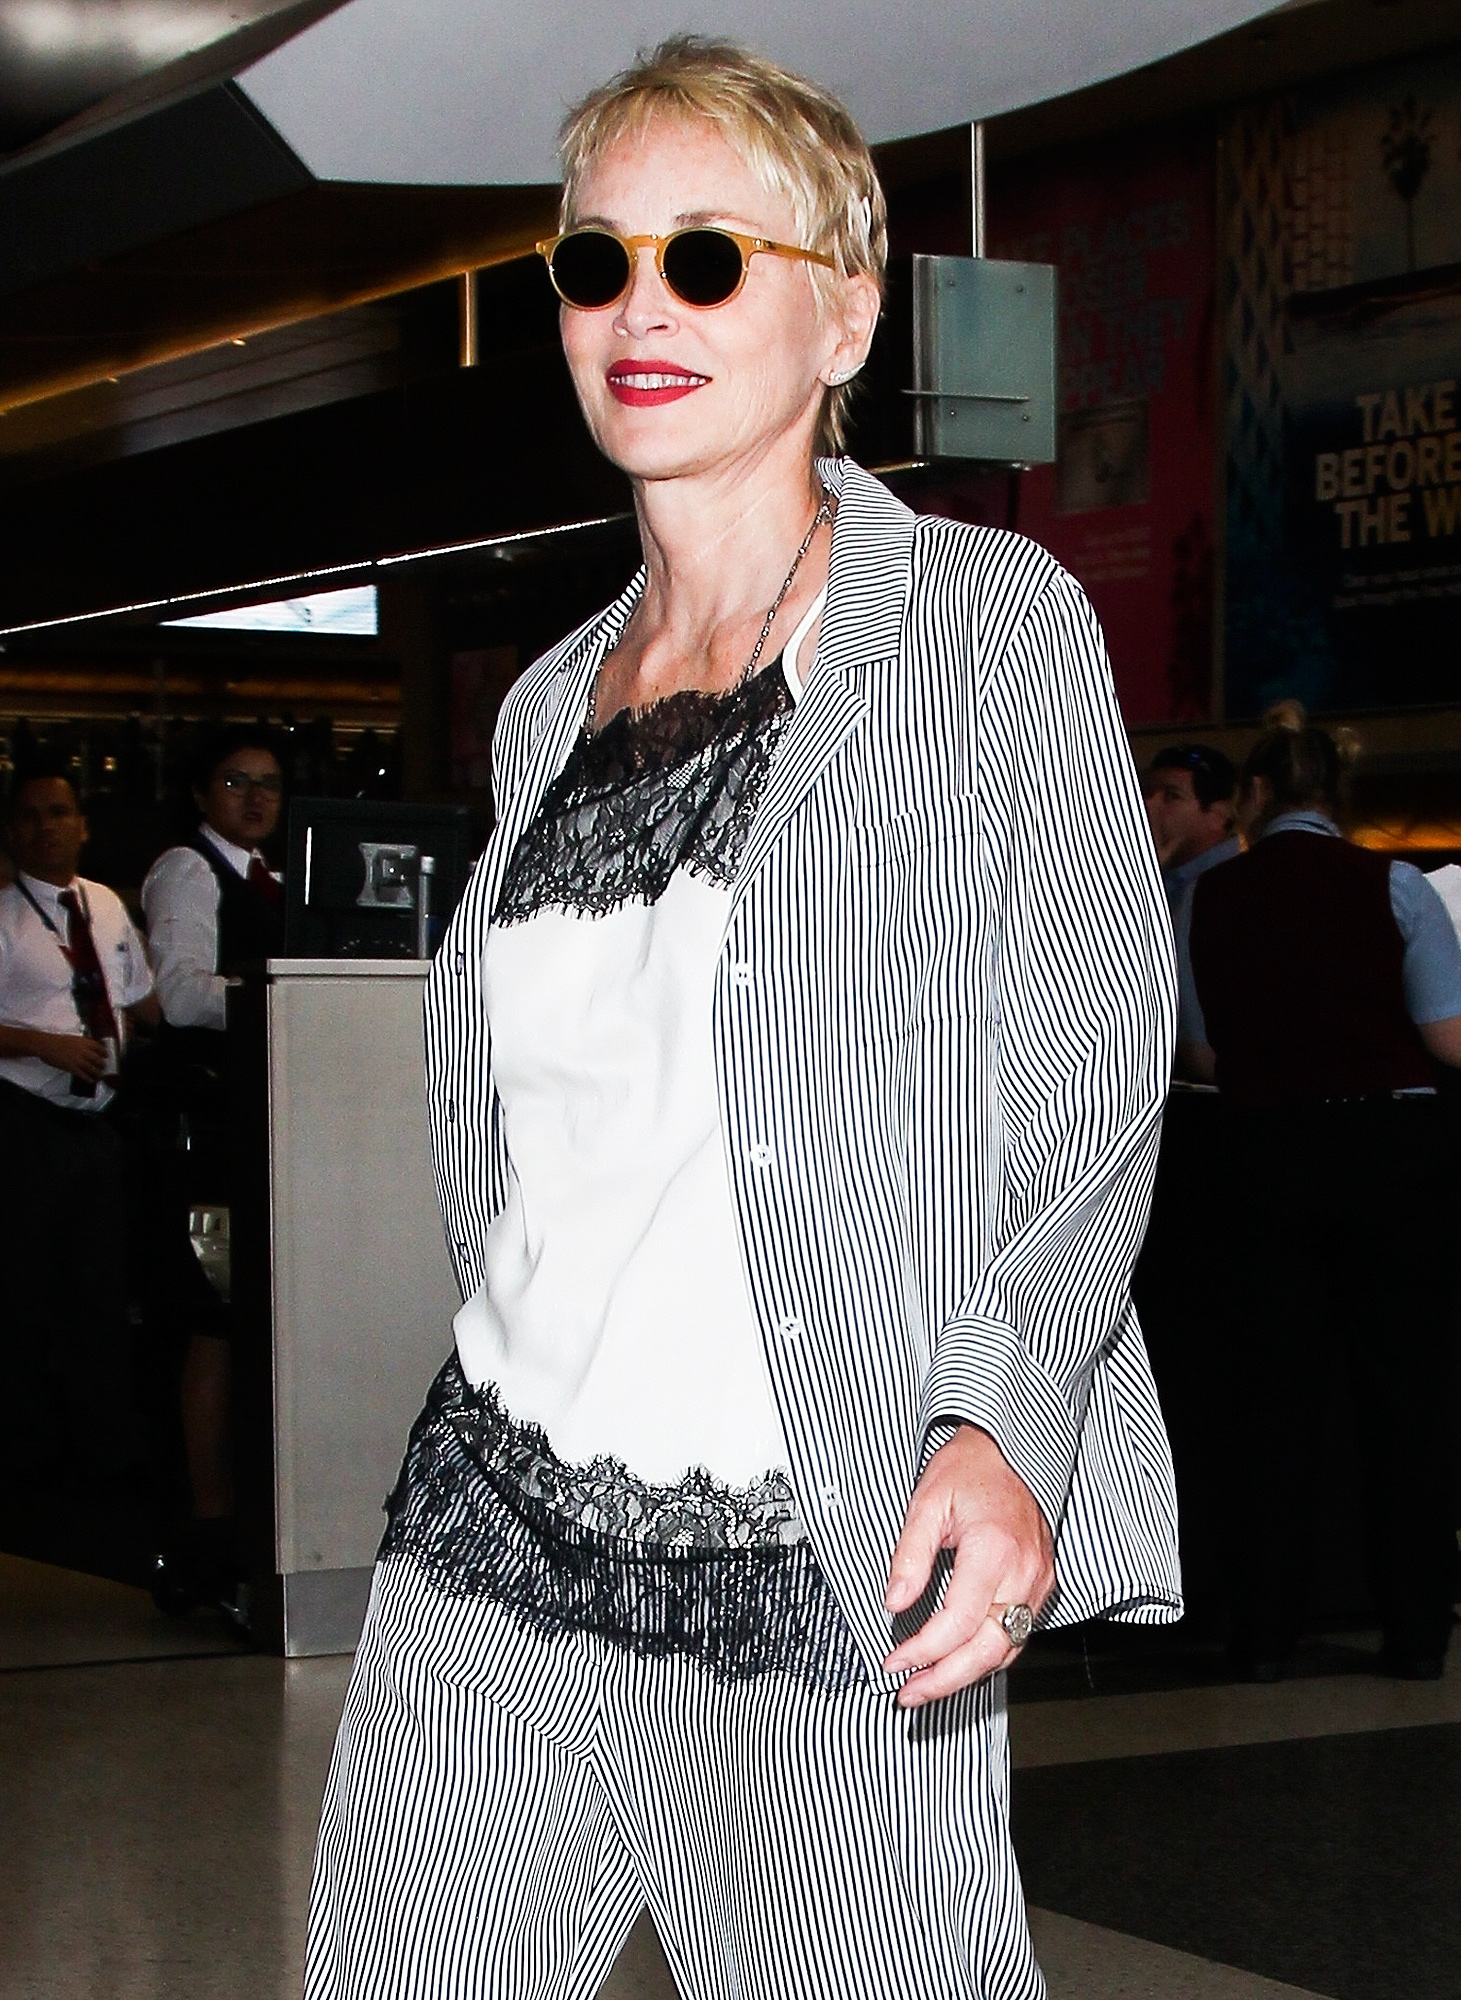 *EXCLUSIVE* Sharon Stone departs LAX in peace!